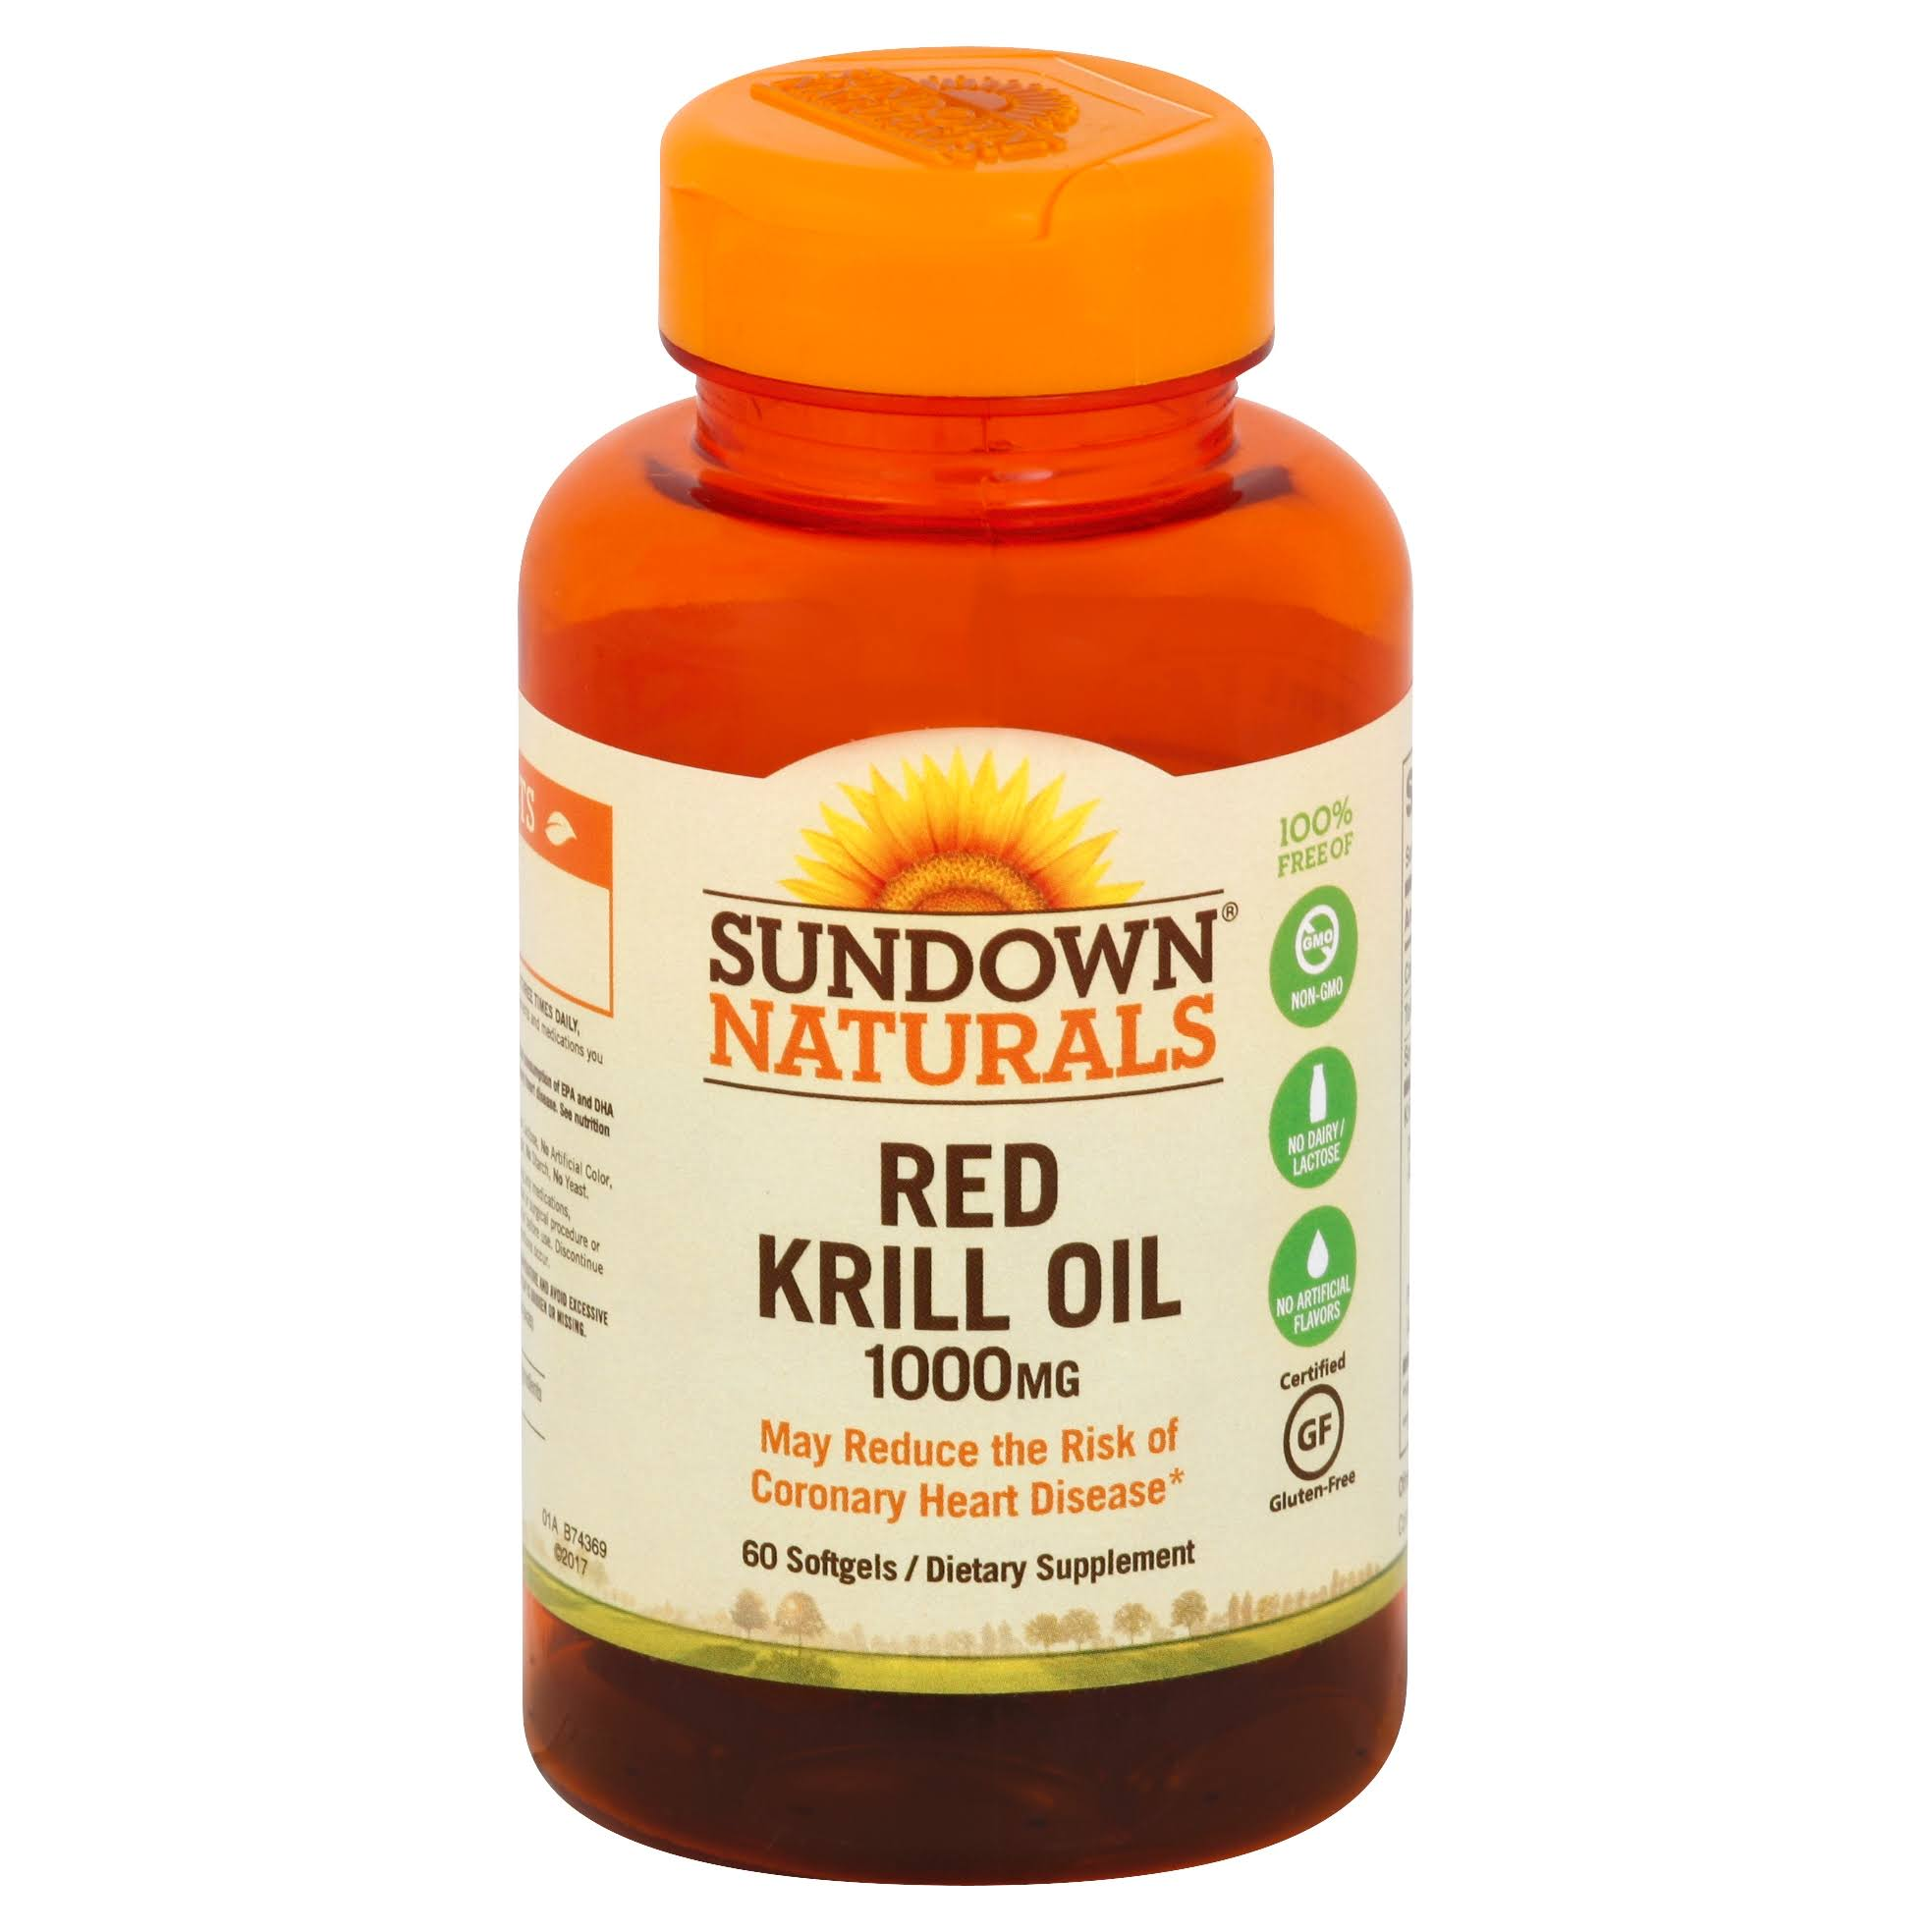 Sundown Naturals Krill Oil Dietary Supplement - 1000mg, 60ct